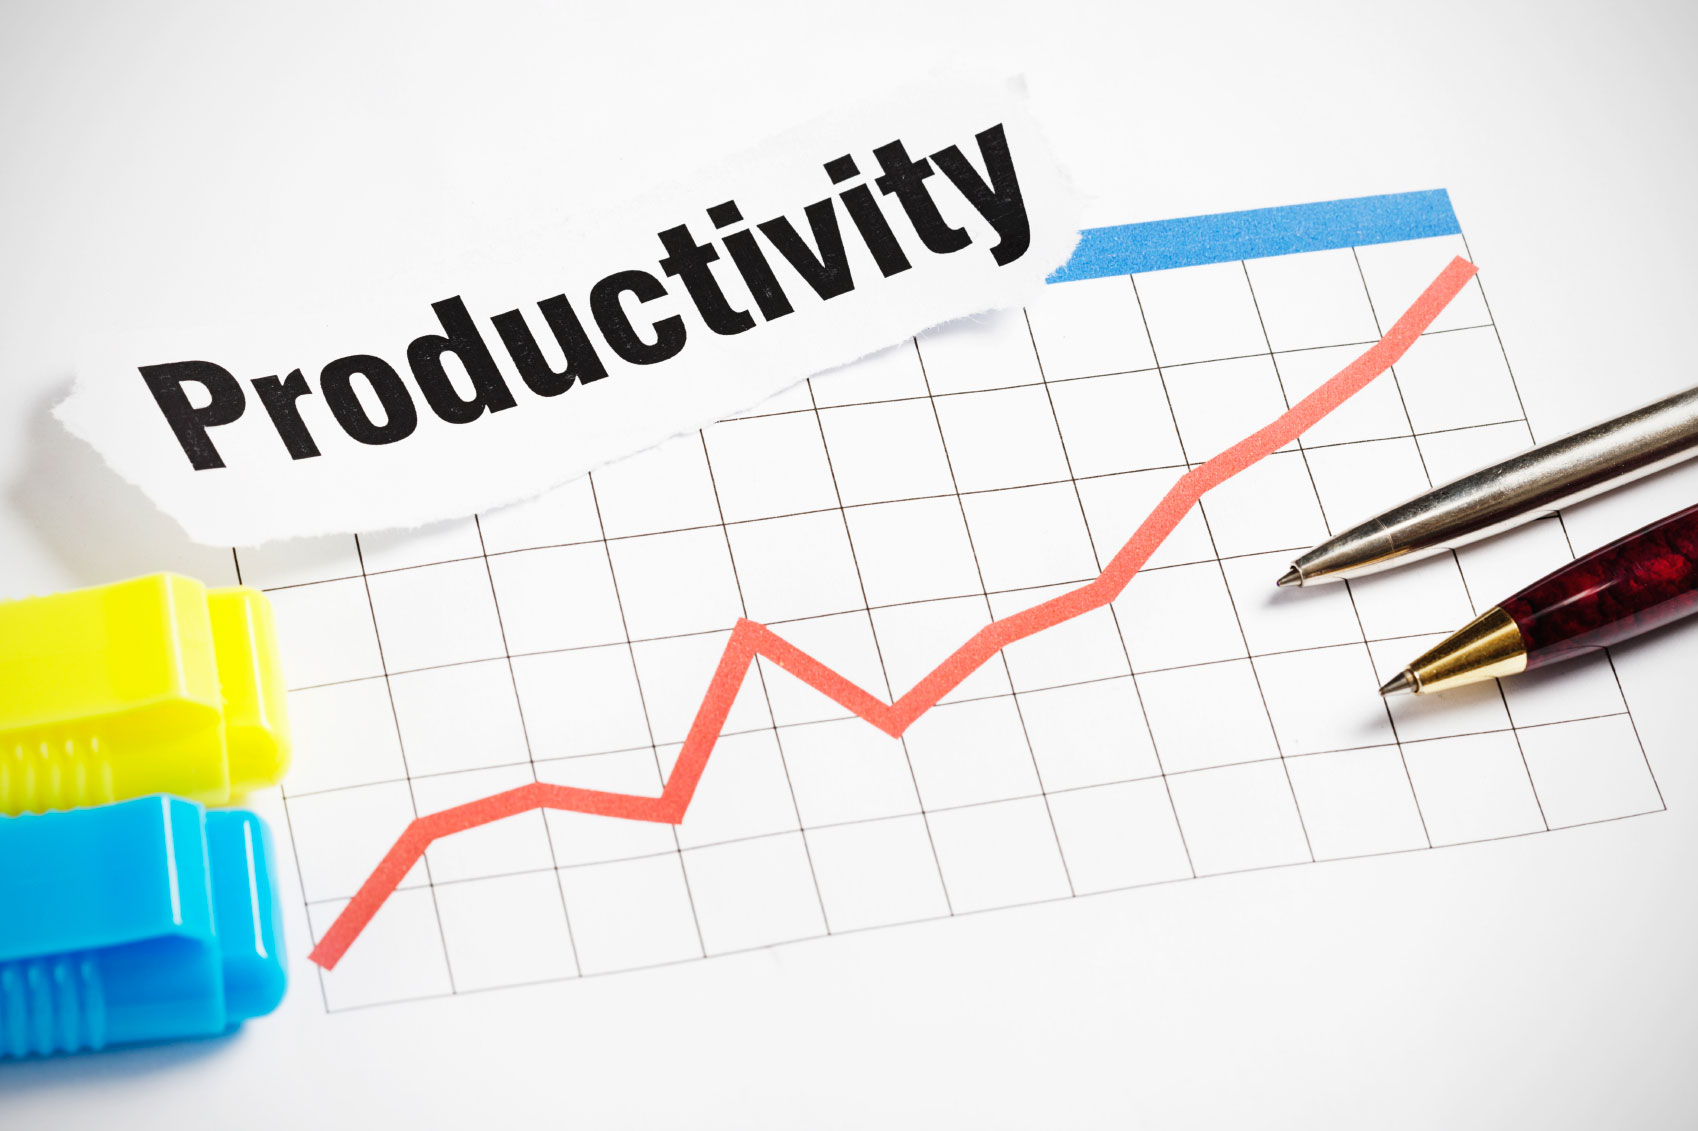 human resource productivity Browse productivity content selected by the human resources today community.